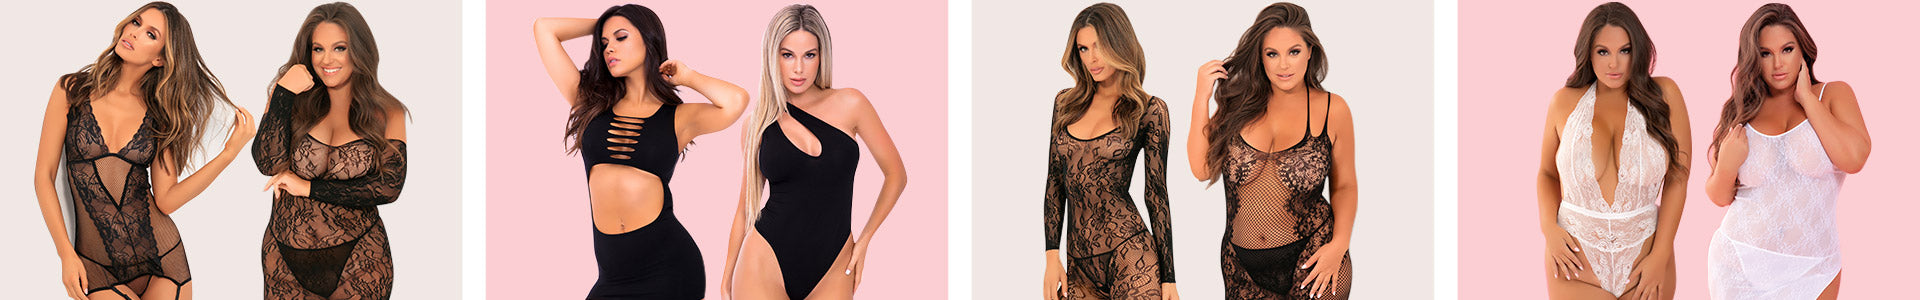 Shop Lingerie From PinkCherry